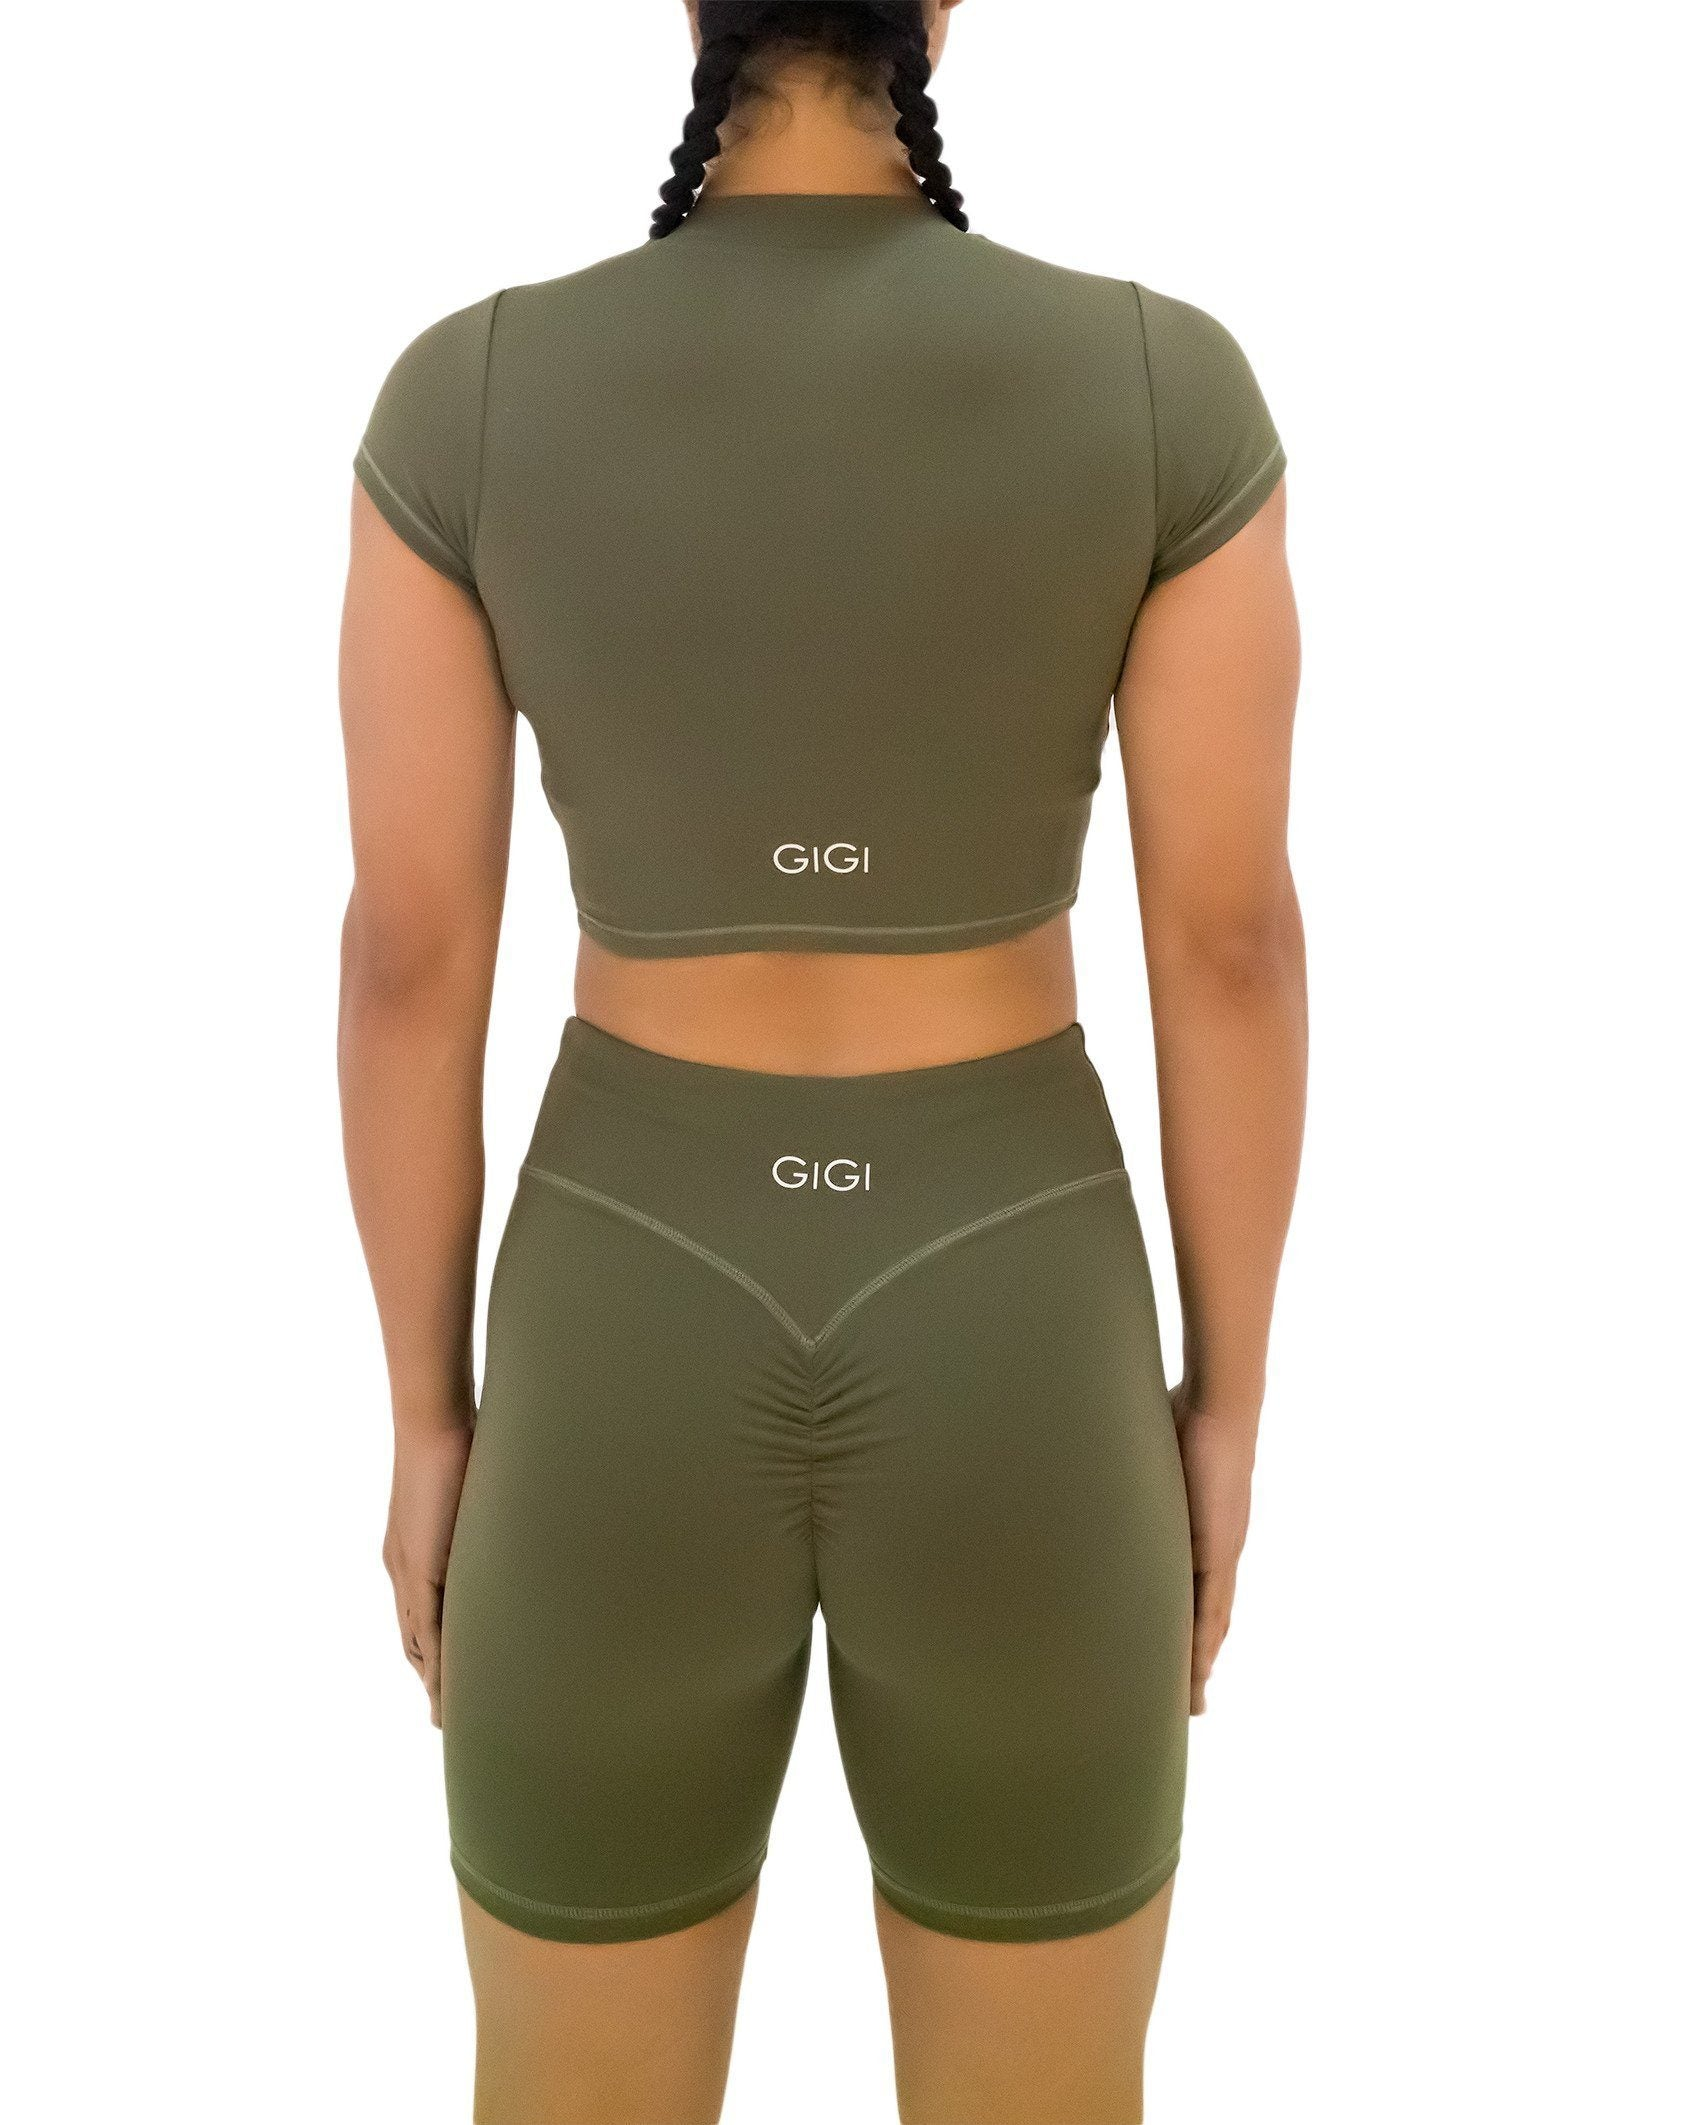 GIGI Lina Bike Shorts - Khaki